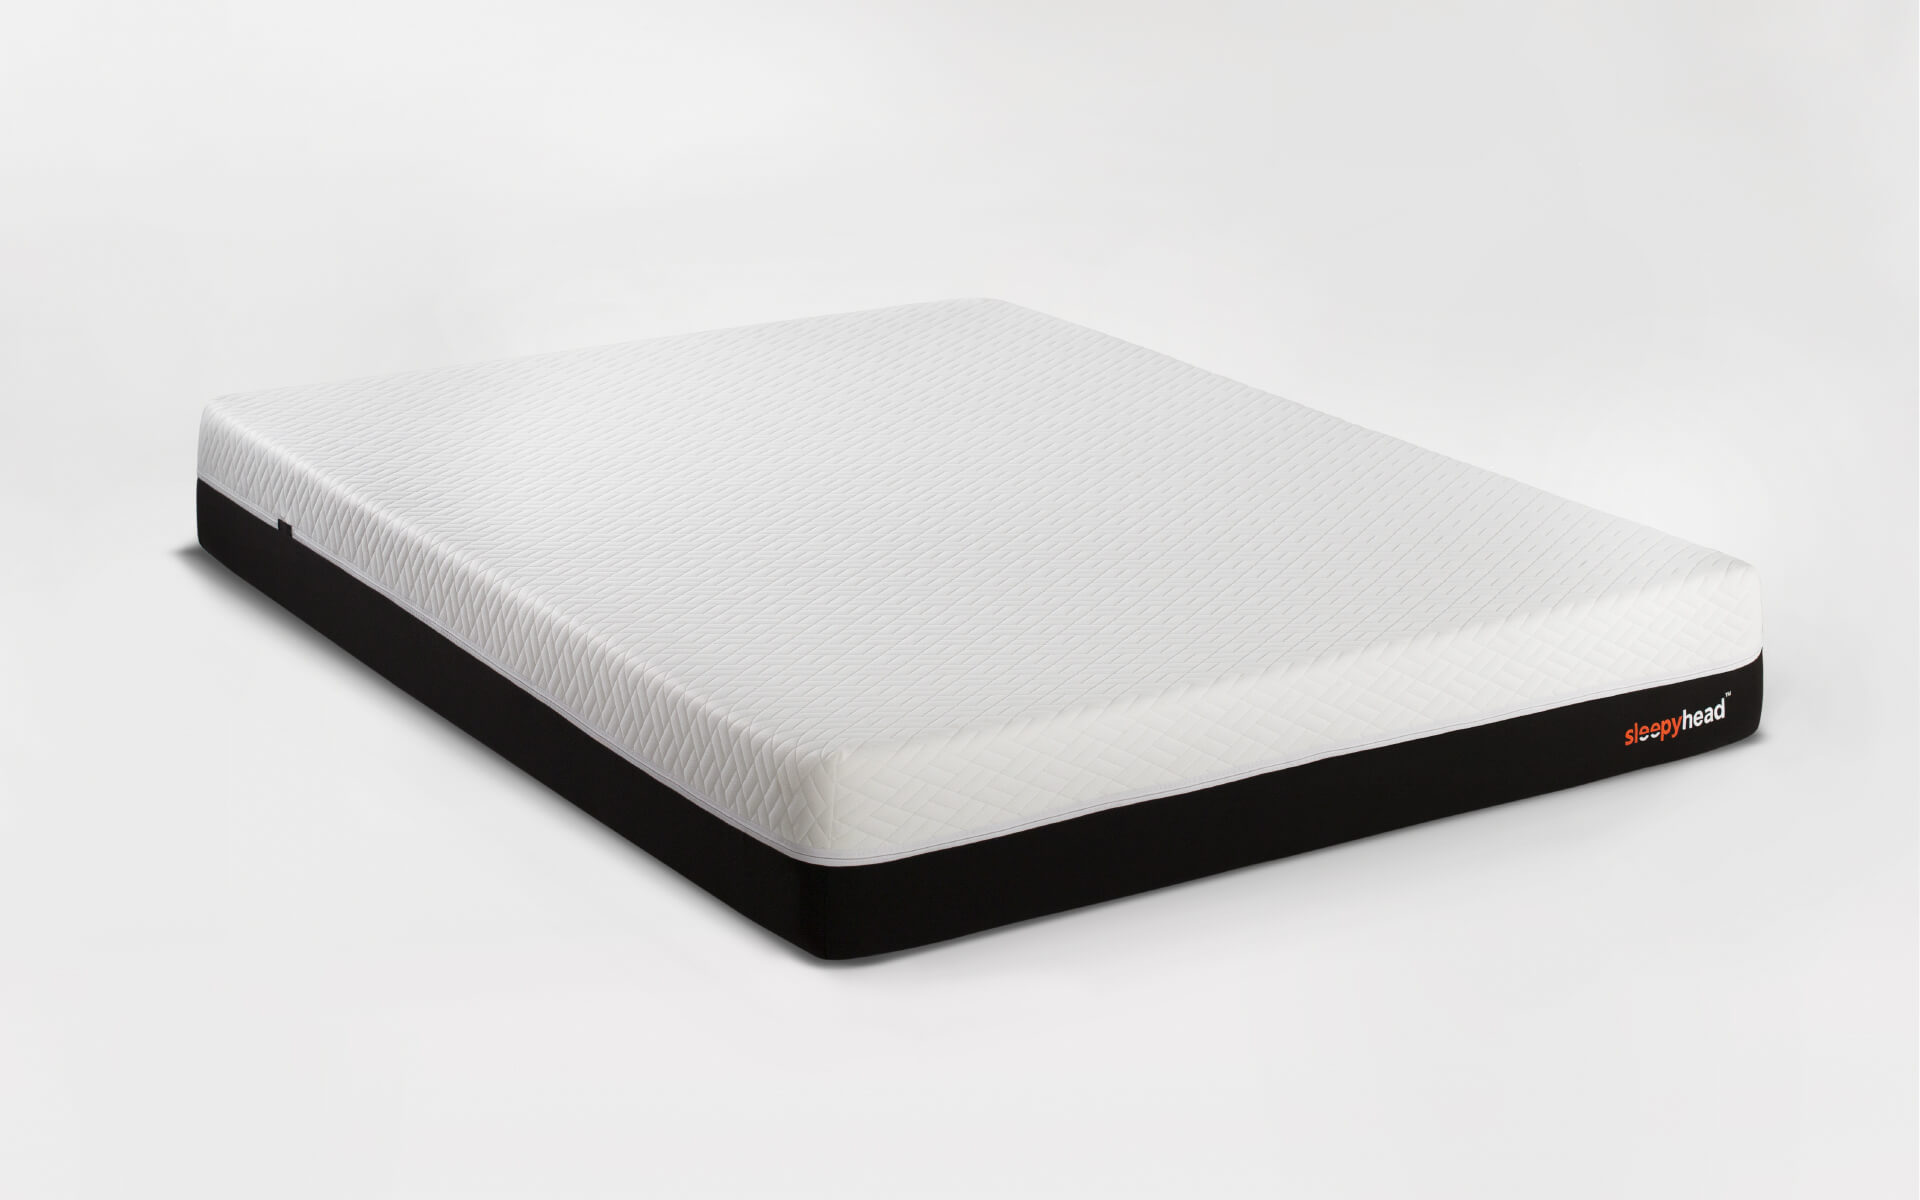 Will The Floyd Mattress Work With Any Bedframe?